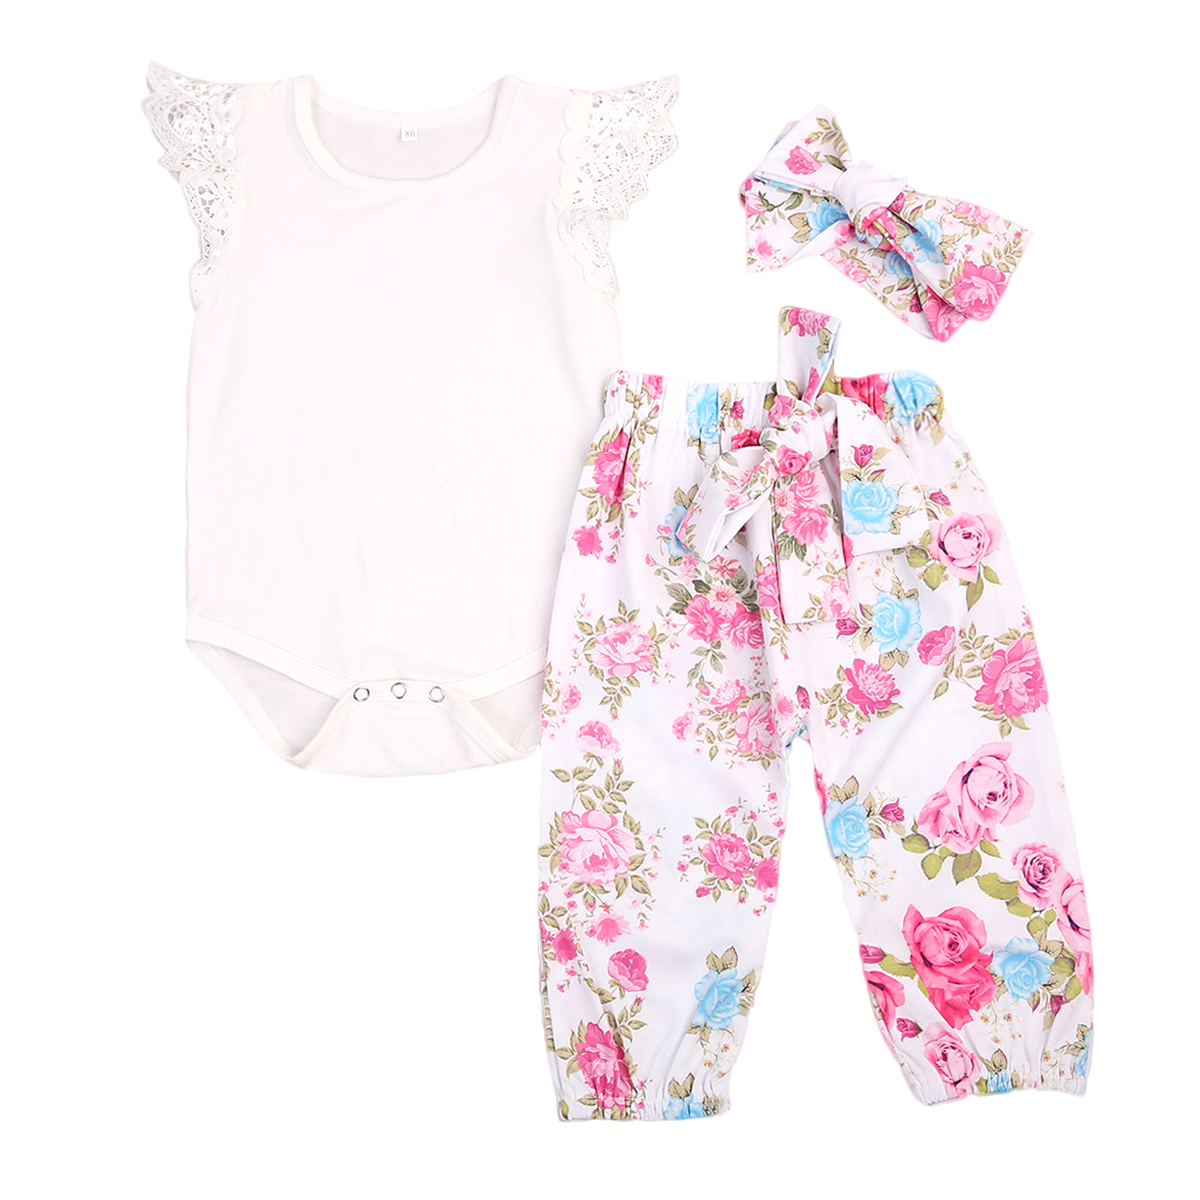 3Pcs Newborn Baby Girl Clothes Lace Tops Sleeveless Romper Floral Pants Headband Clothes Cute Baby Sets Outfit